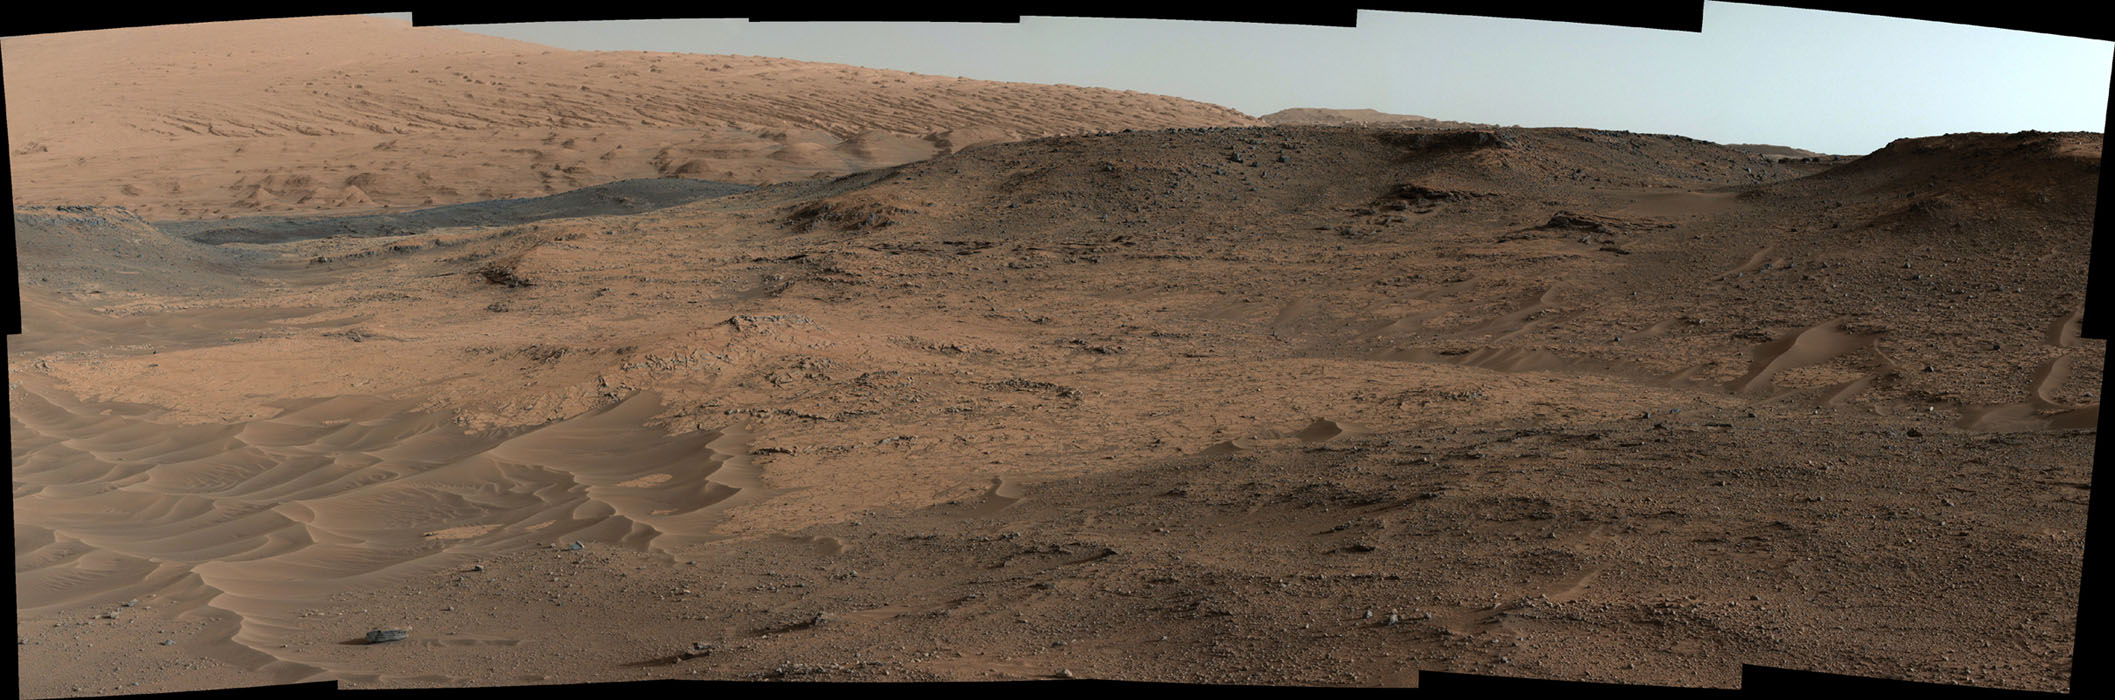 This southeastward-looking vista from the Mast Camera (Mastcam) on NASA's Curiosity Mars rover shows the 'Pahrump Hills' outcrop and surrounding terrain seen from a position about 70 feet (20 meters) northwest of the outcrop.